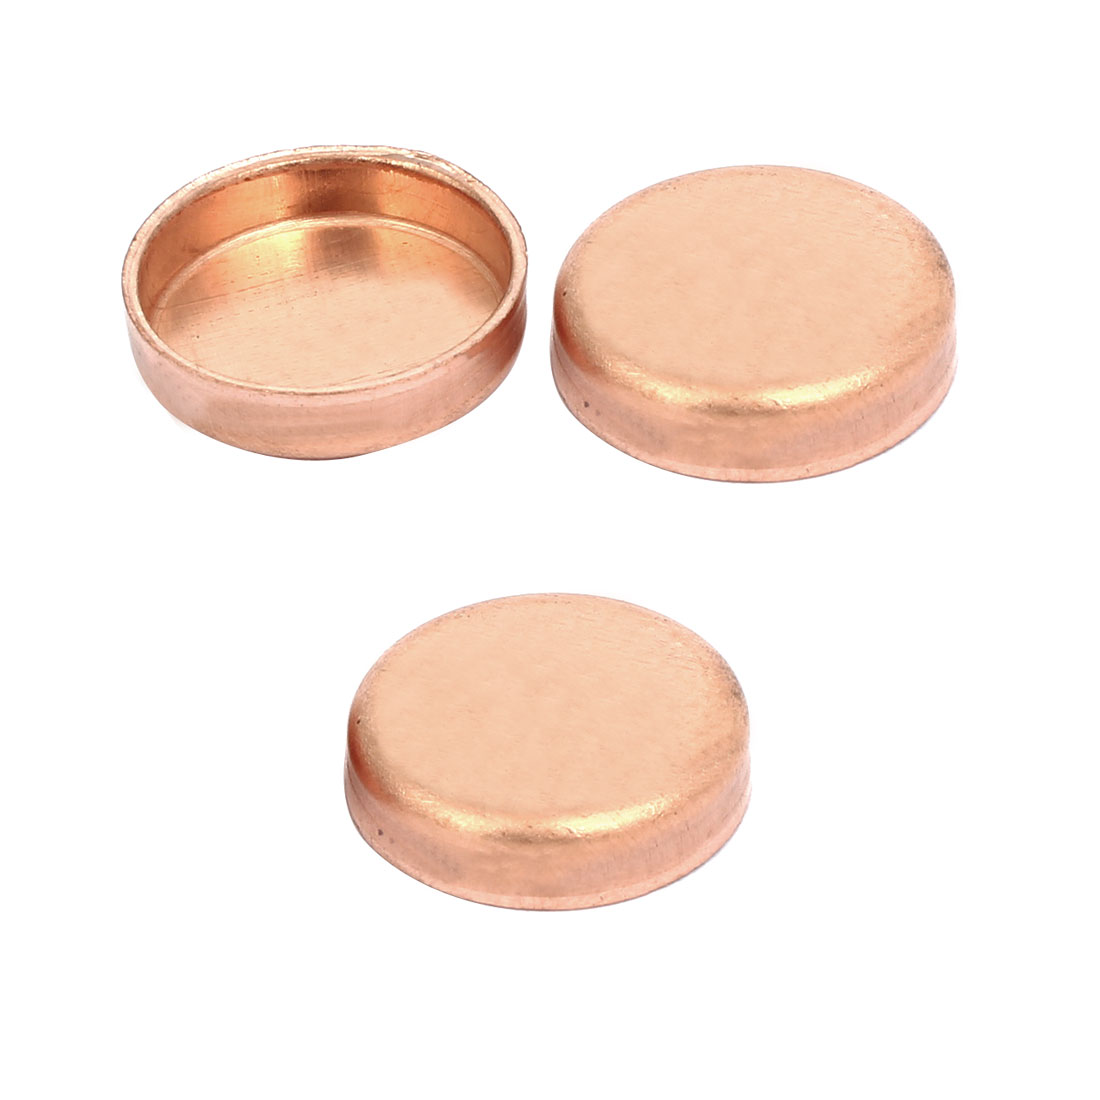 19mmx1mm Copper Pipe Tube End Cap Cover Plumbing Fitting 3pcs